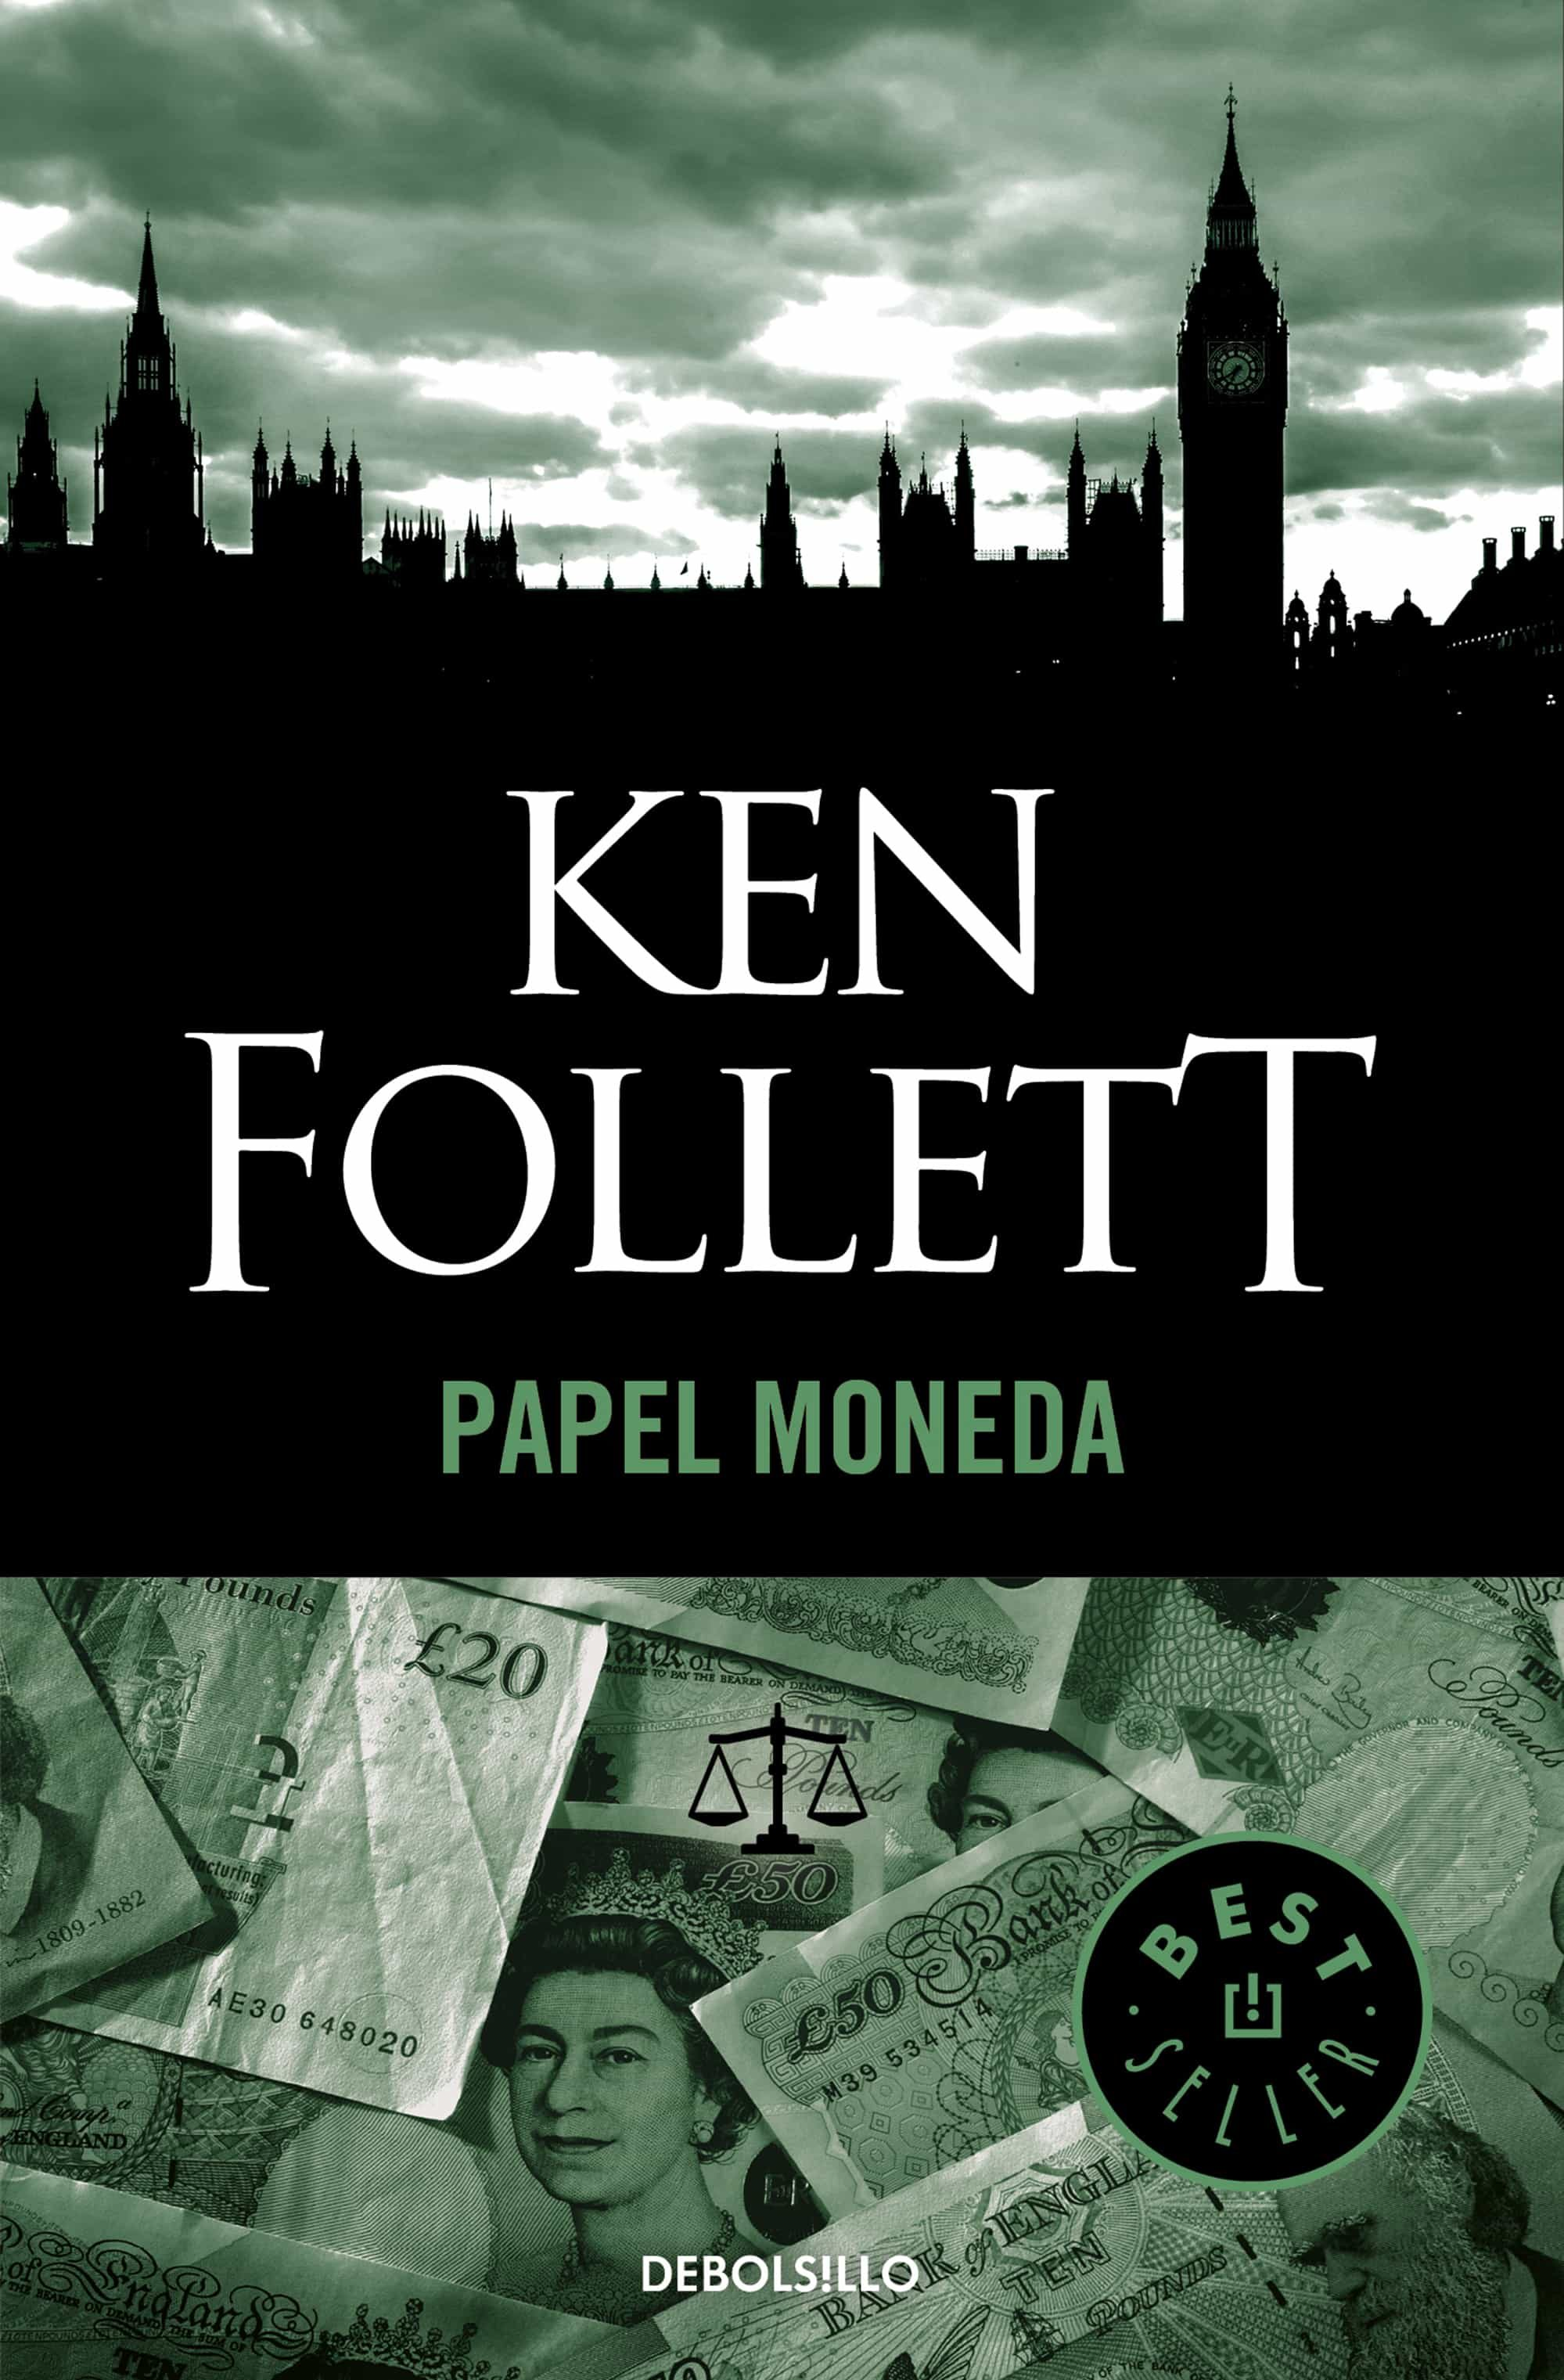 Descargar Libros Ken Follet Papel Moneda Ebook Ken Follett Descargar Libro Pdf O Epub 9788490329474